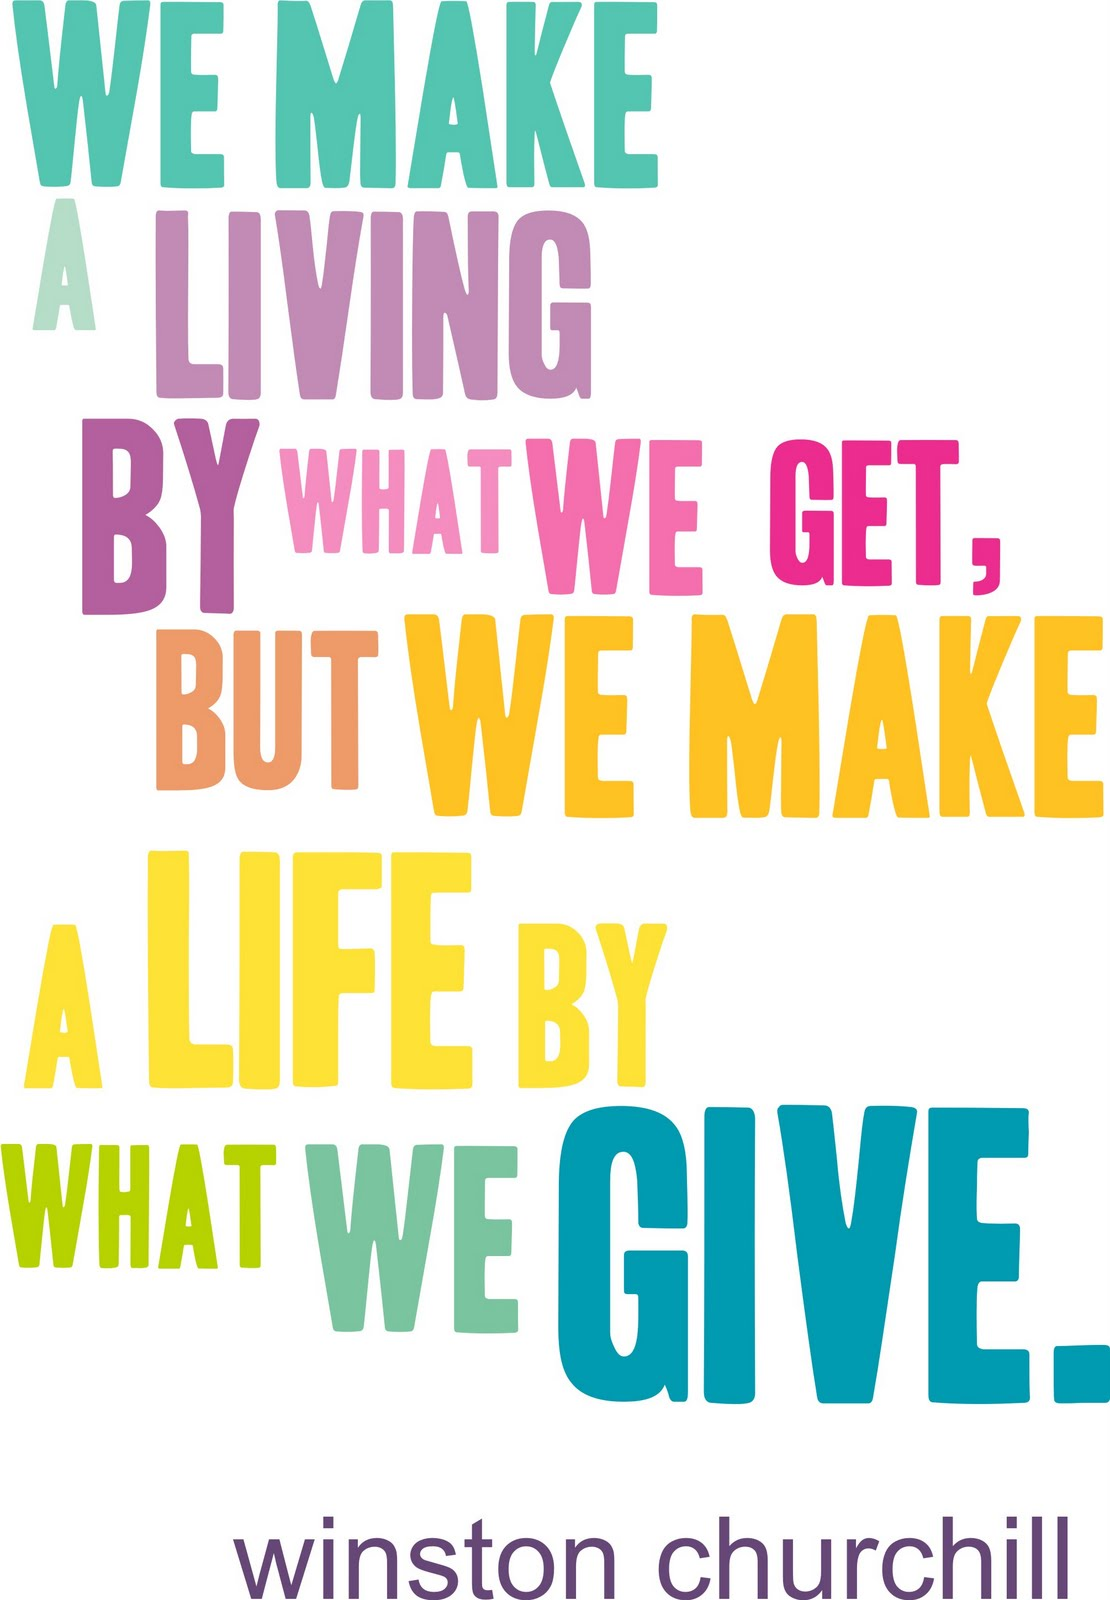 Quotes 2: 568 ALL NEW QUOTES GIVING BACK TO THE COMMUNITY